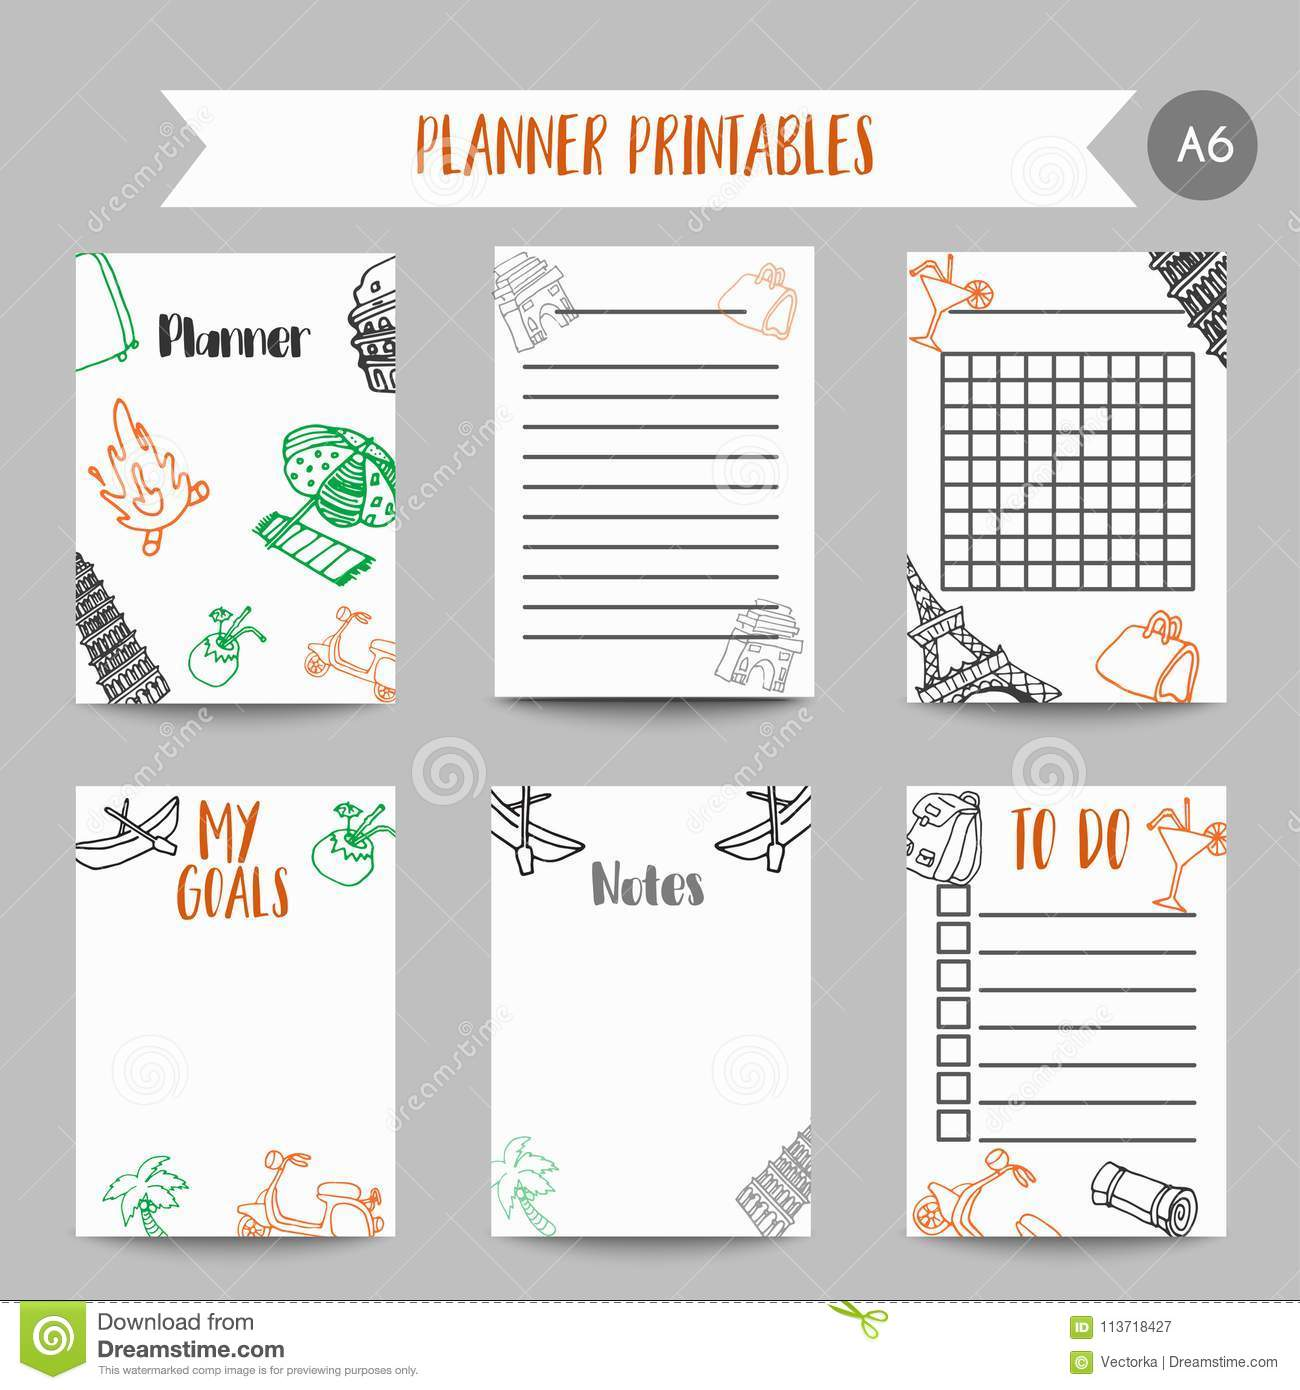 cards and symbols for organized you planner printables with tarvel